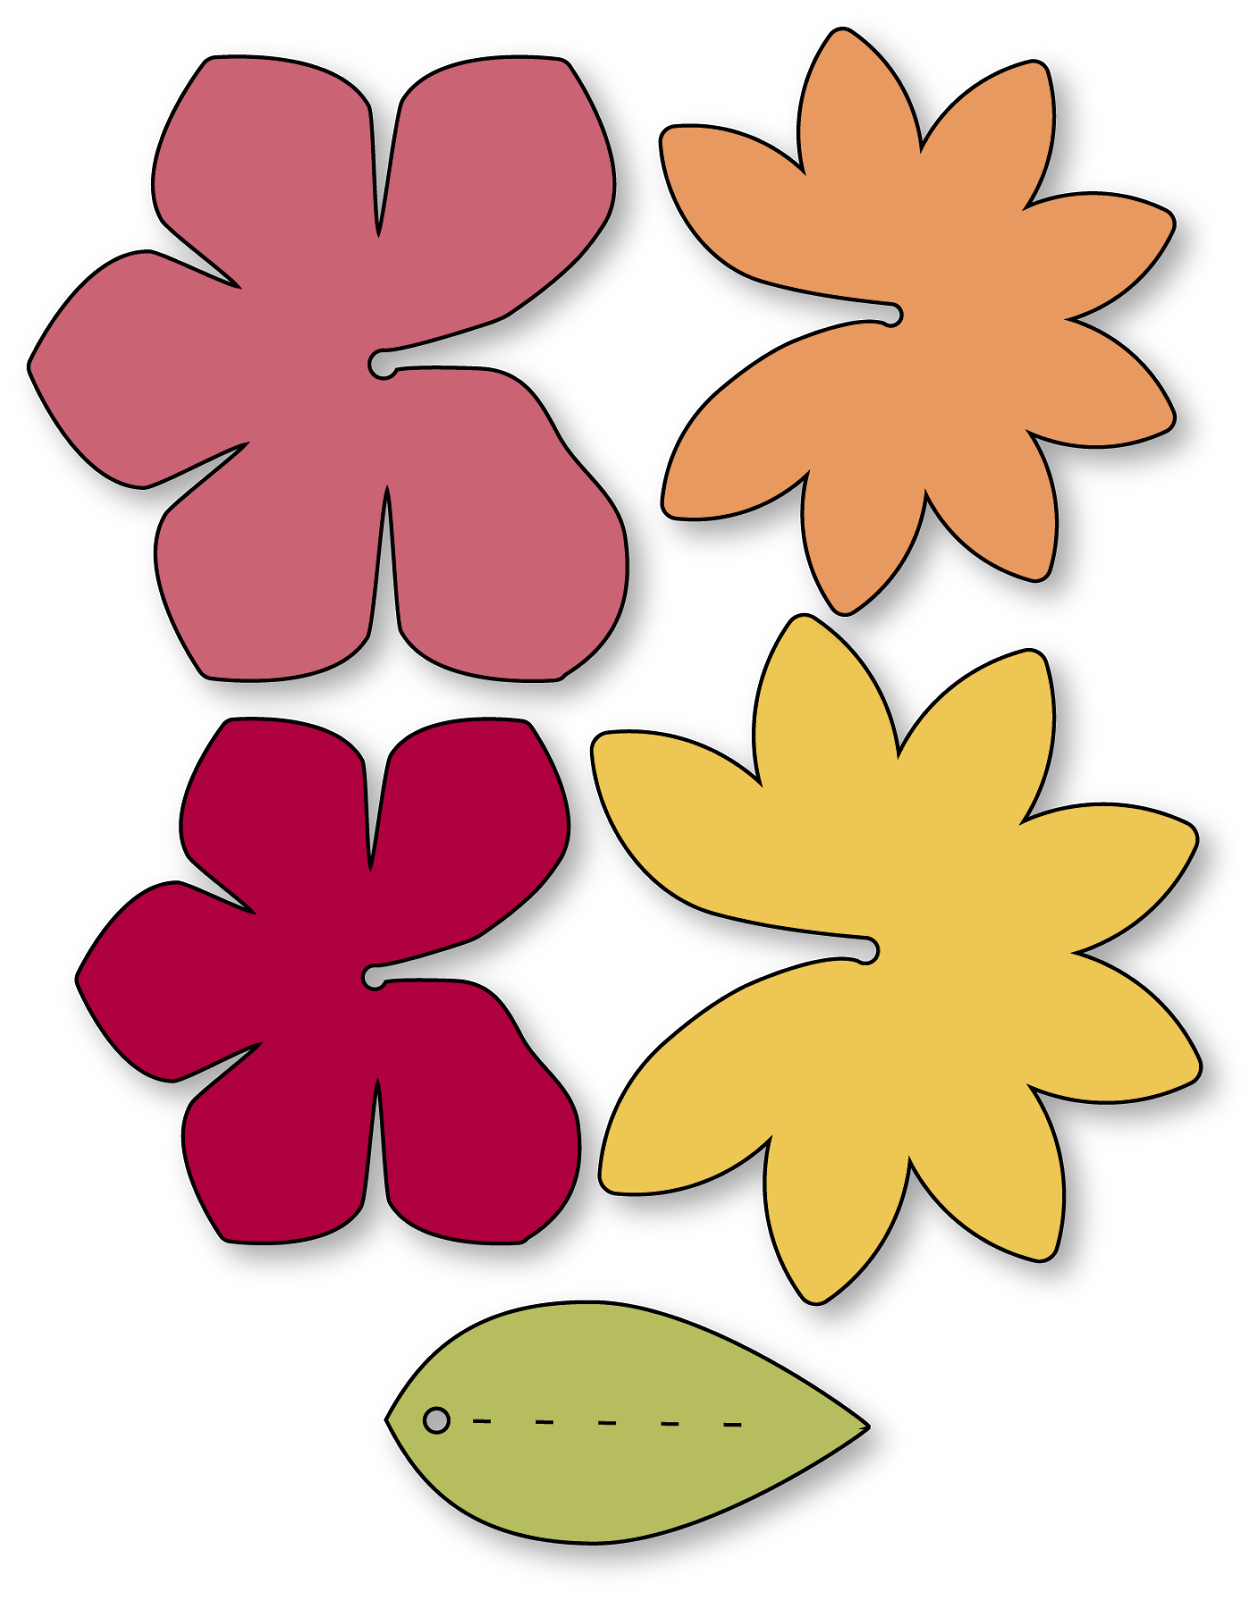 Needles n knowledge island. Flower lei clipart